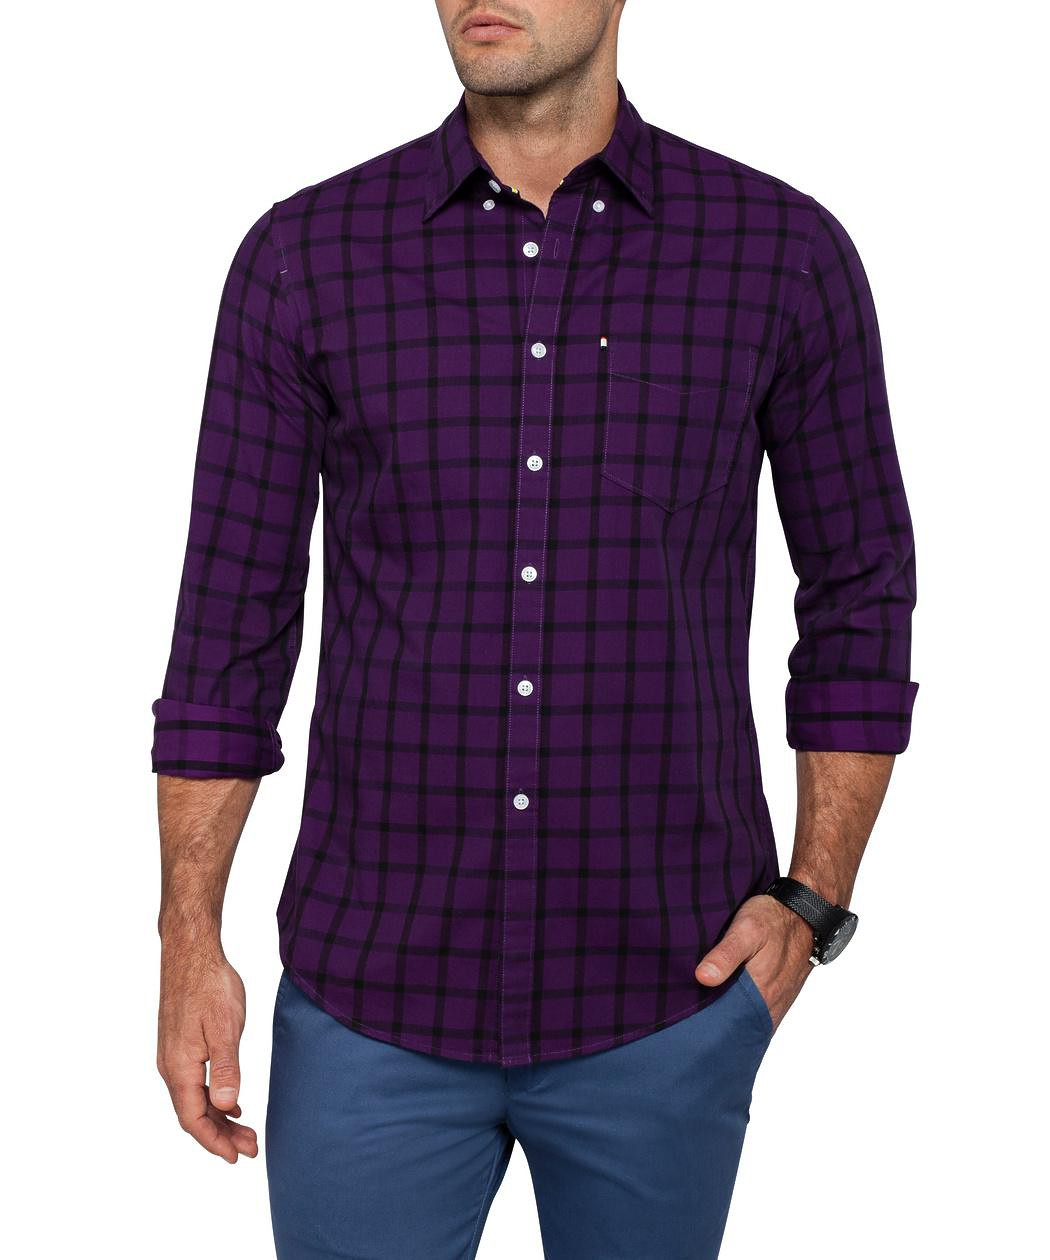 Mens purple shirt t shirts design concept Light purple dress shirt men